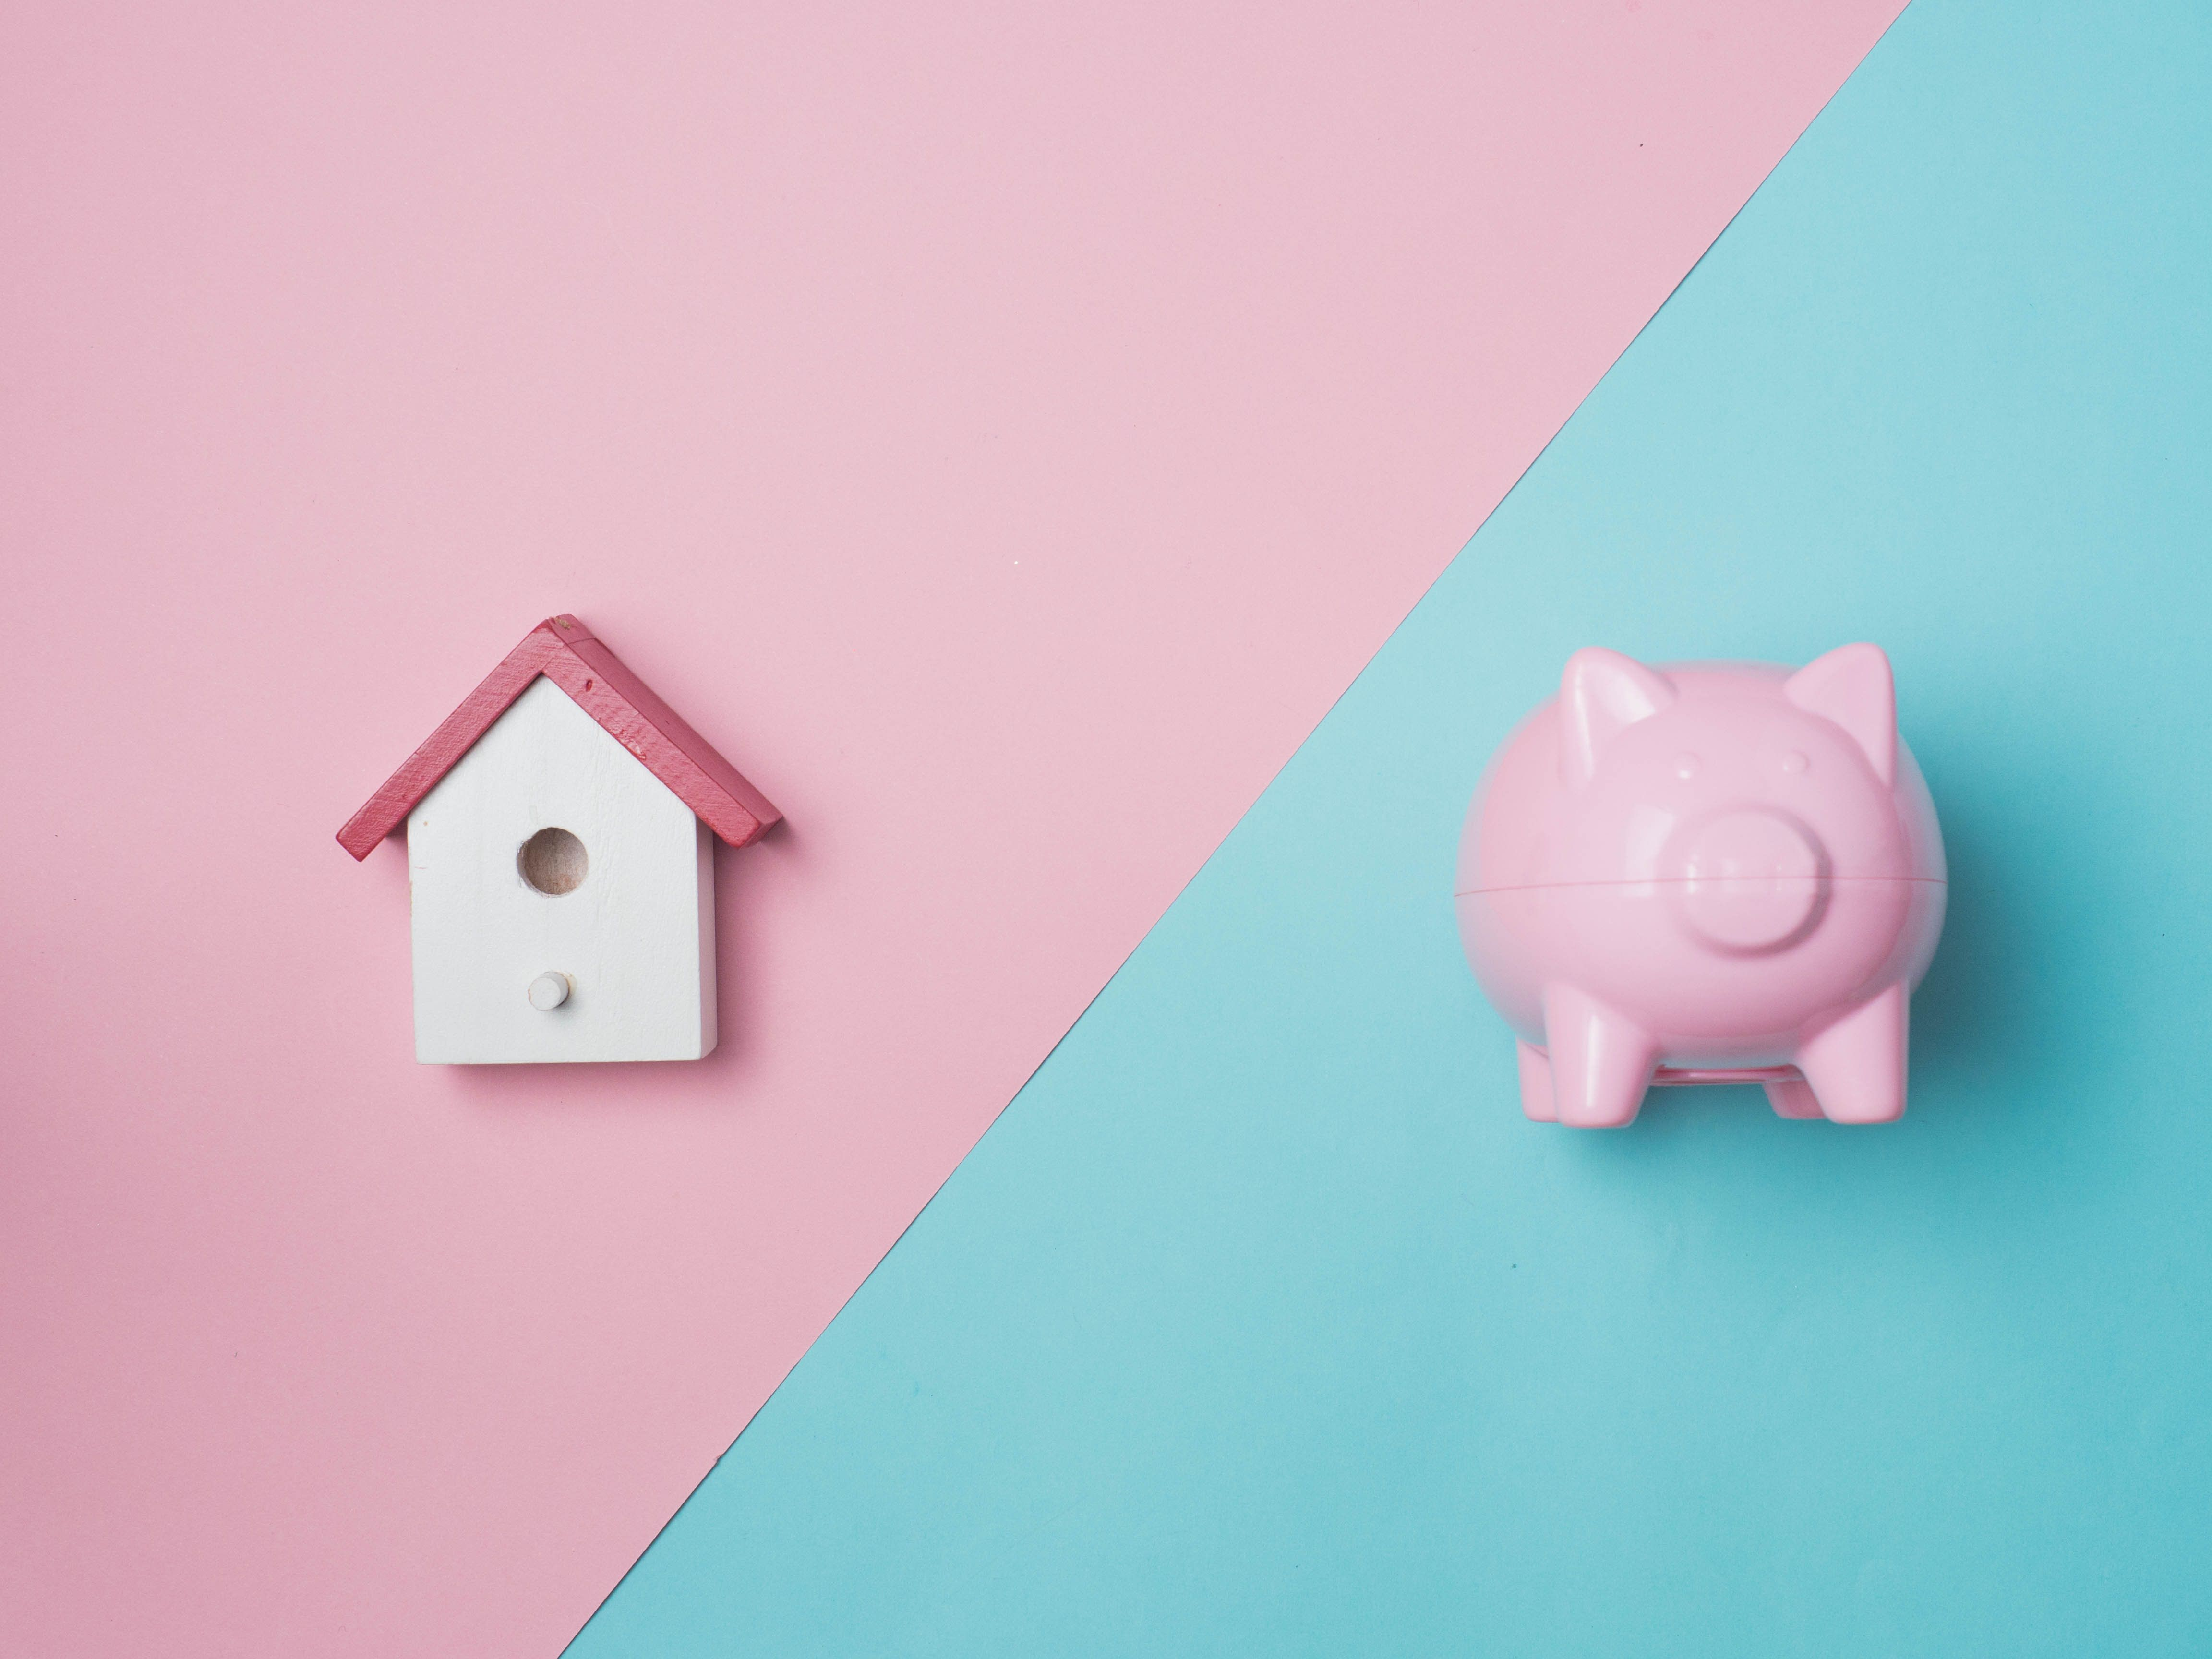 Piggy Bank Money Saving Finance Concept.Piggy bank pink color on color background.top view flat lay style.